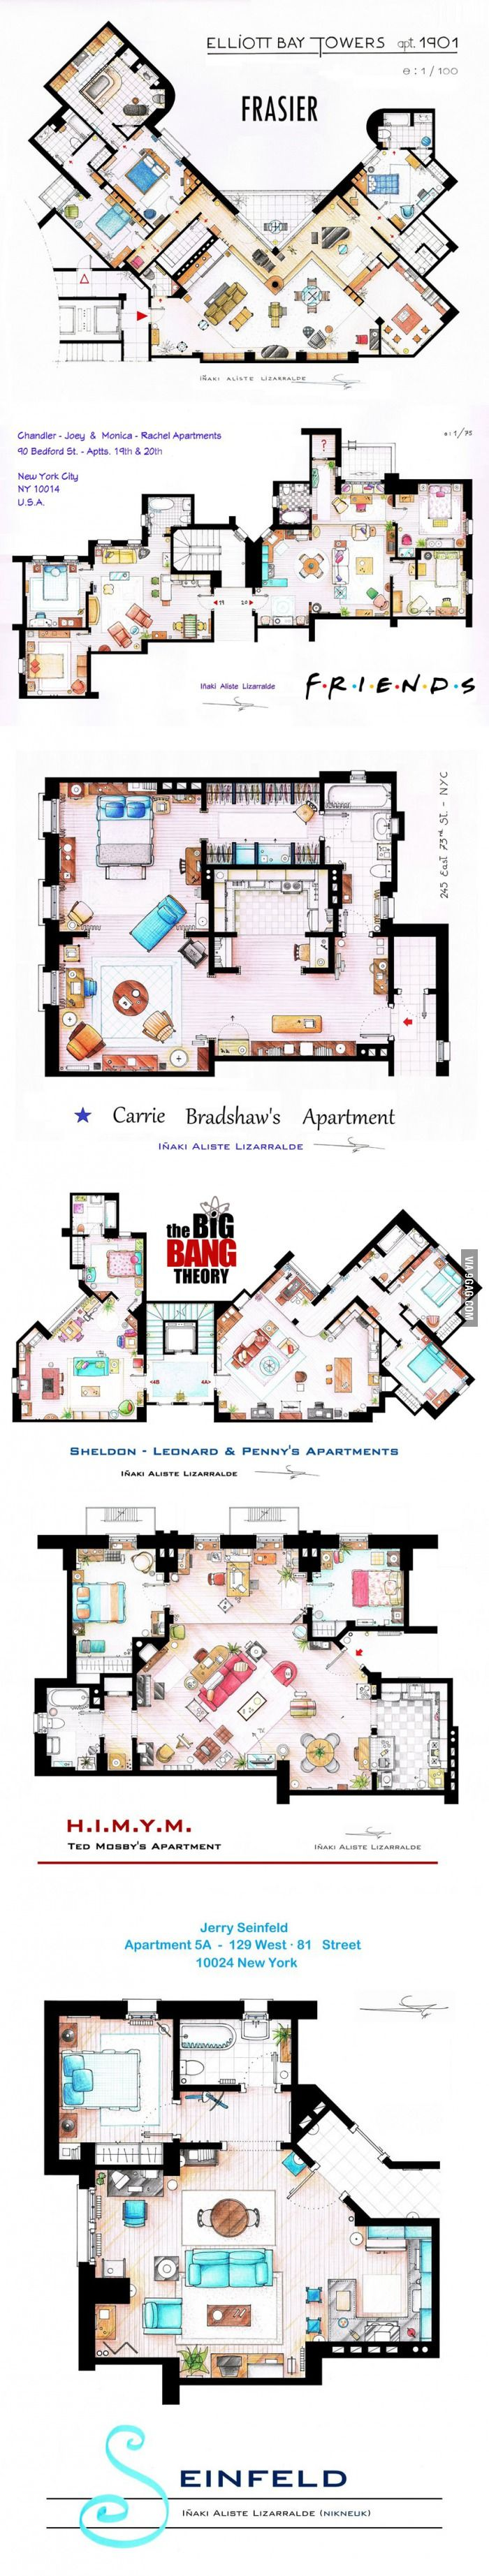 Floor plans from some TV series...interesting...I'm such an interior design nerd:)